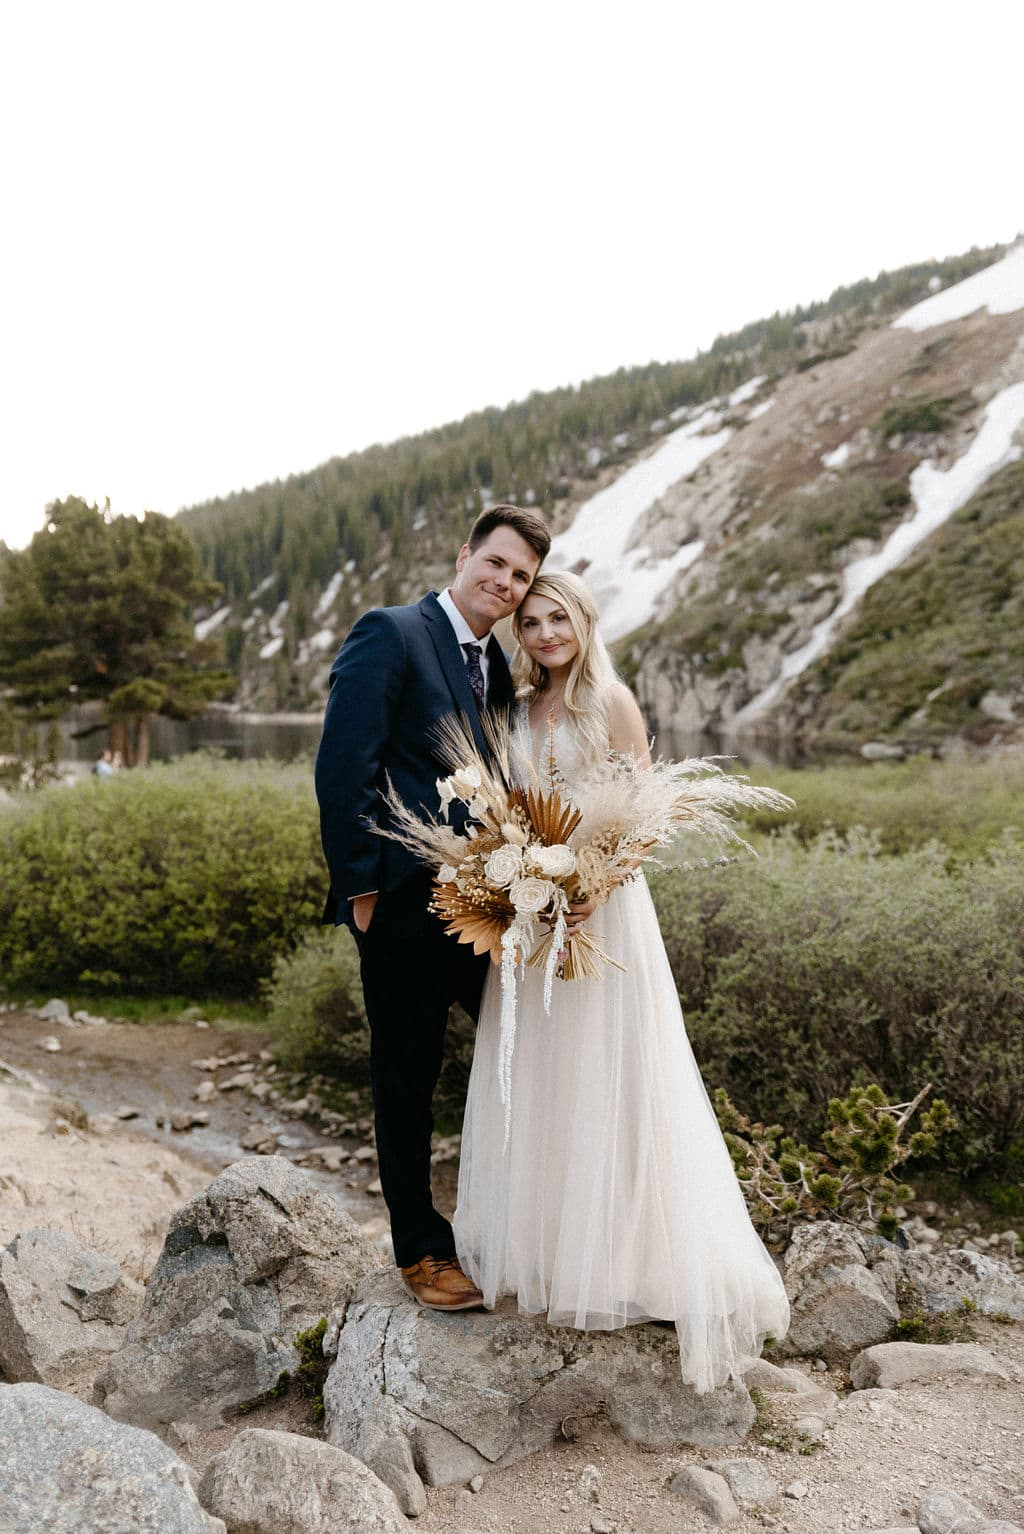 Couple just married at St Mary's Glacier in Colorado